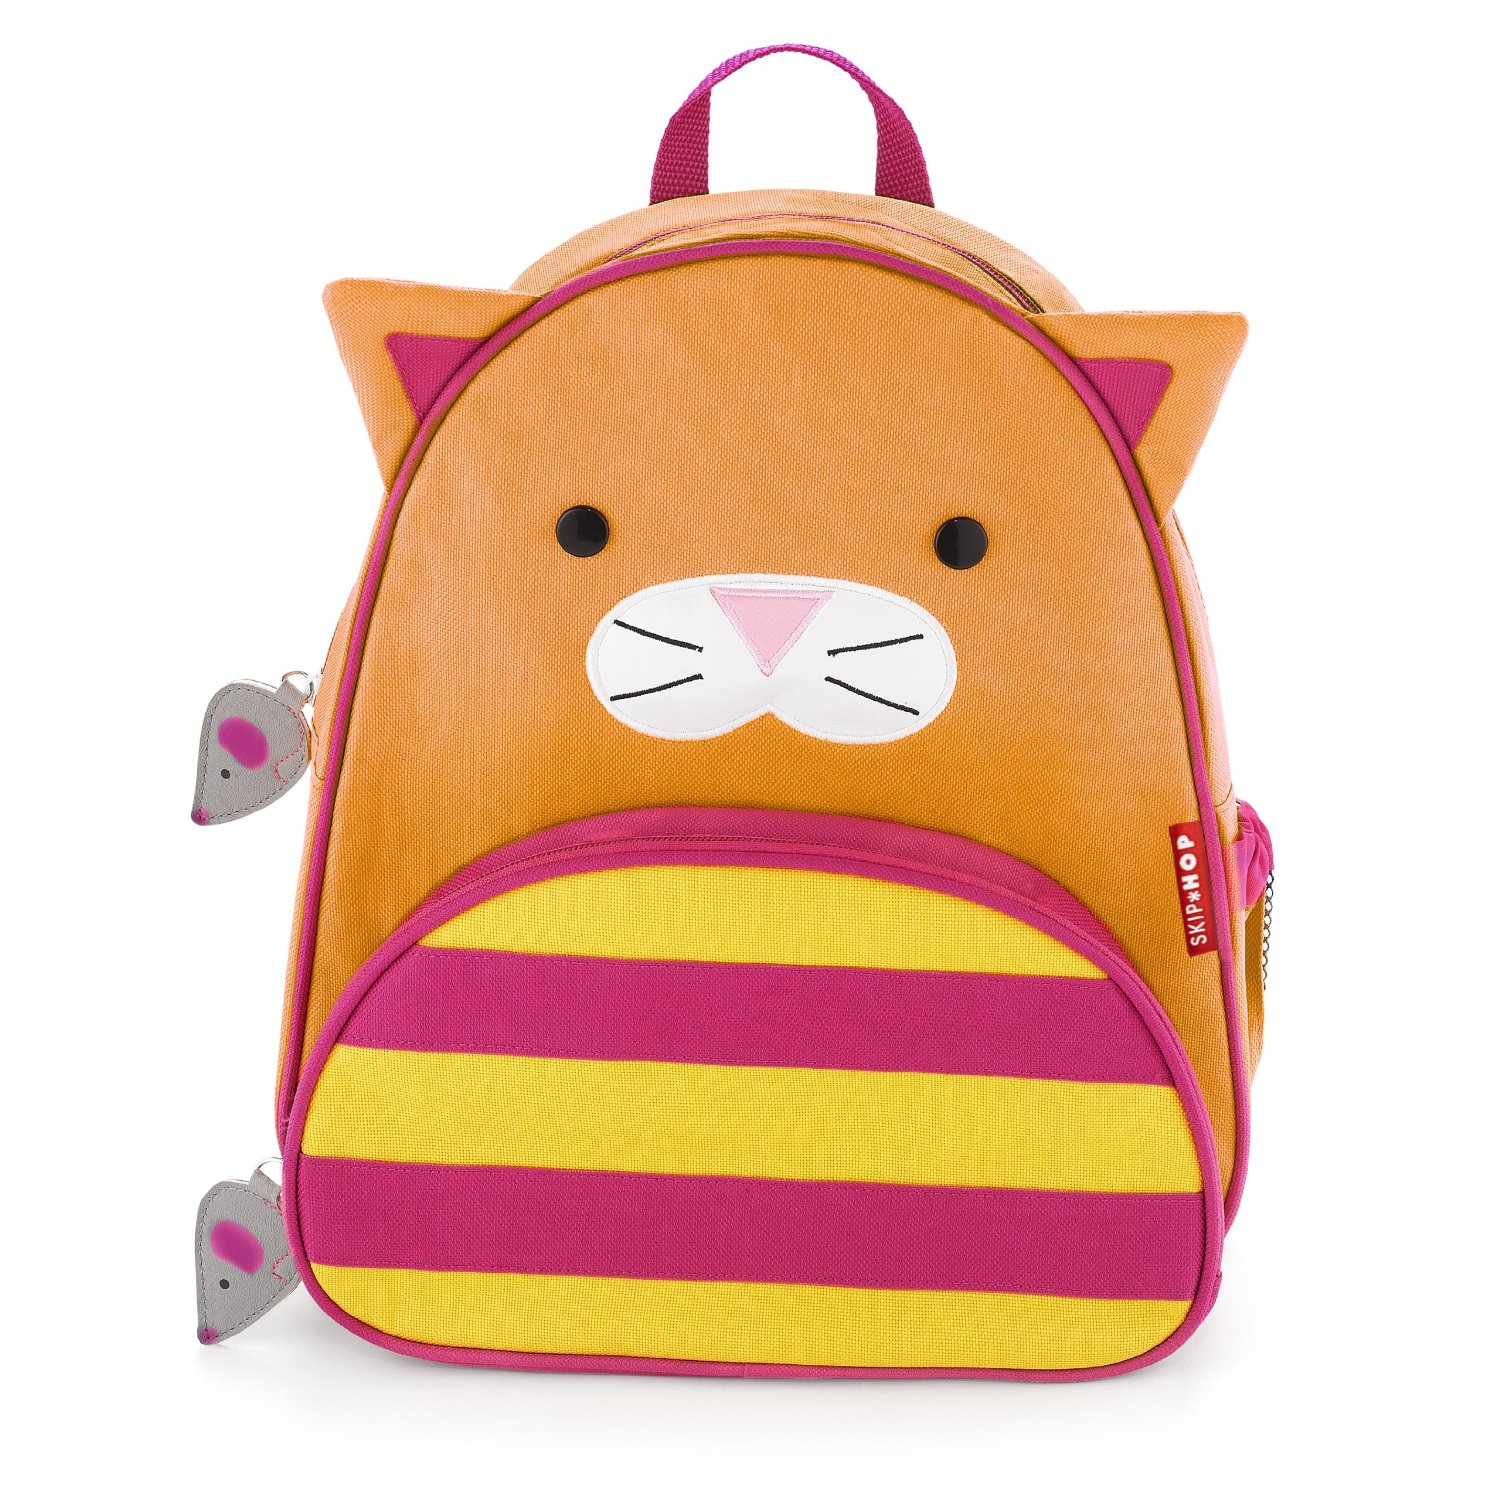 Backpacks Kids YBFGX6Pv